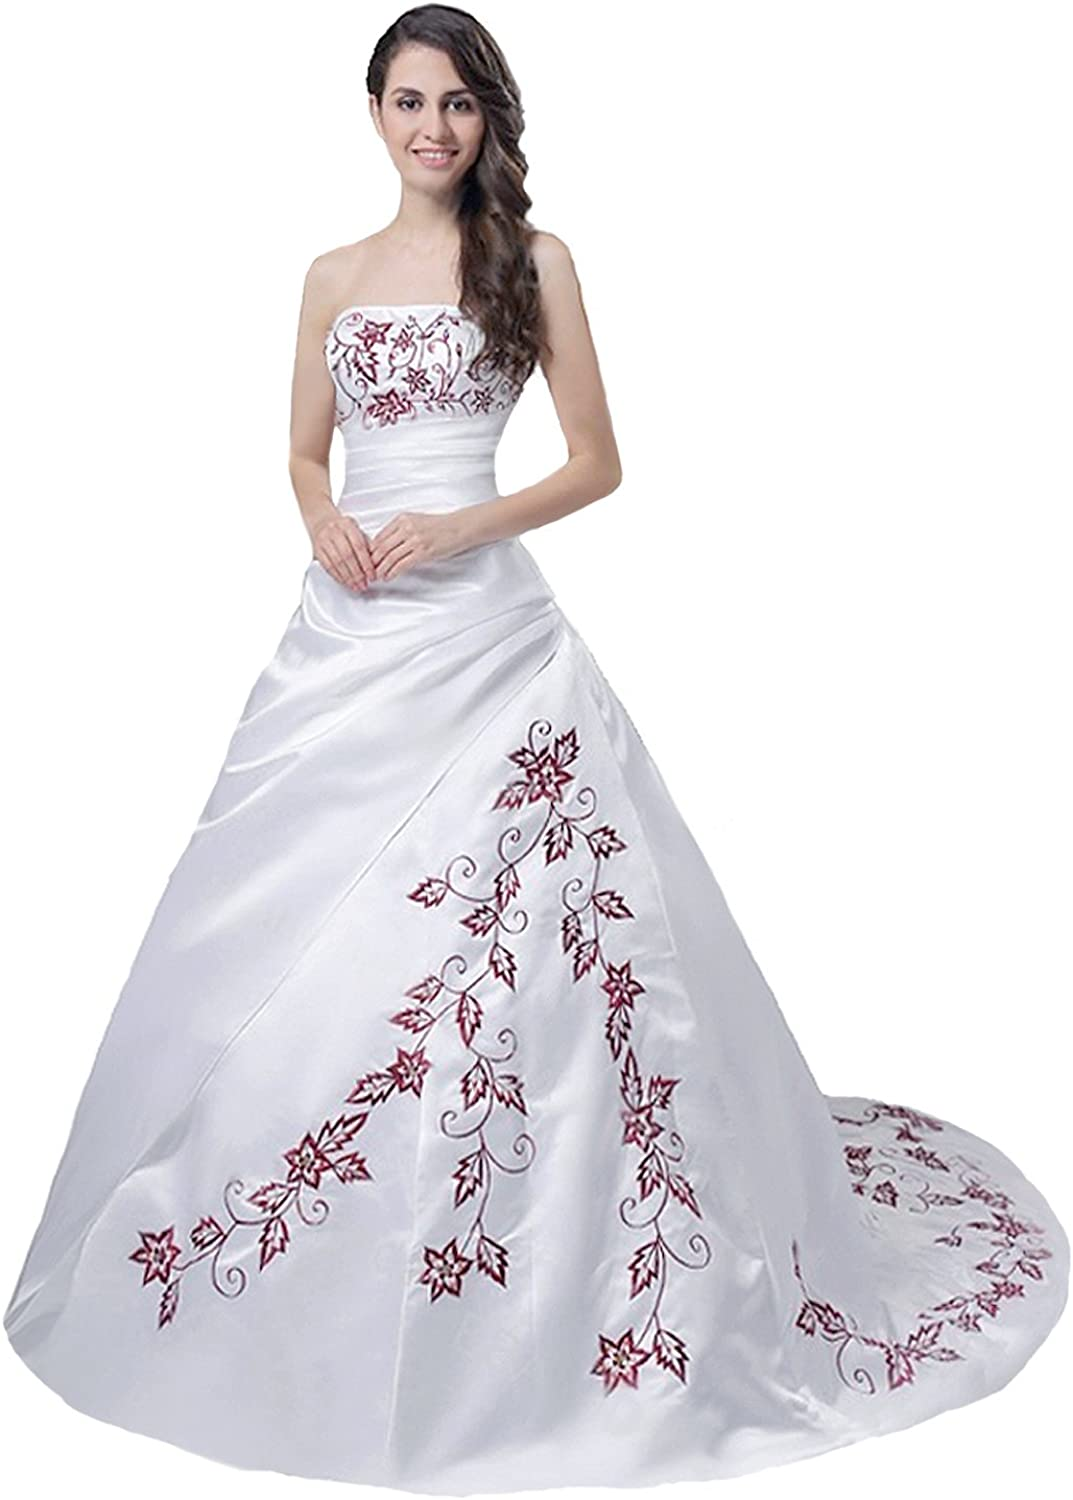 Faironly M56 Red Embroidery overseas Dress Wedding Ranking TOP8 White